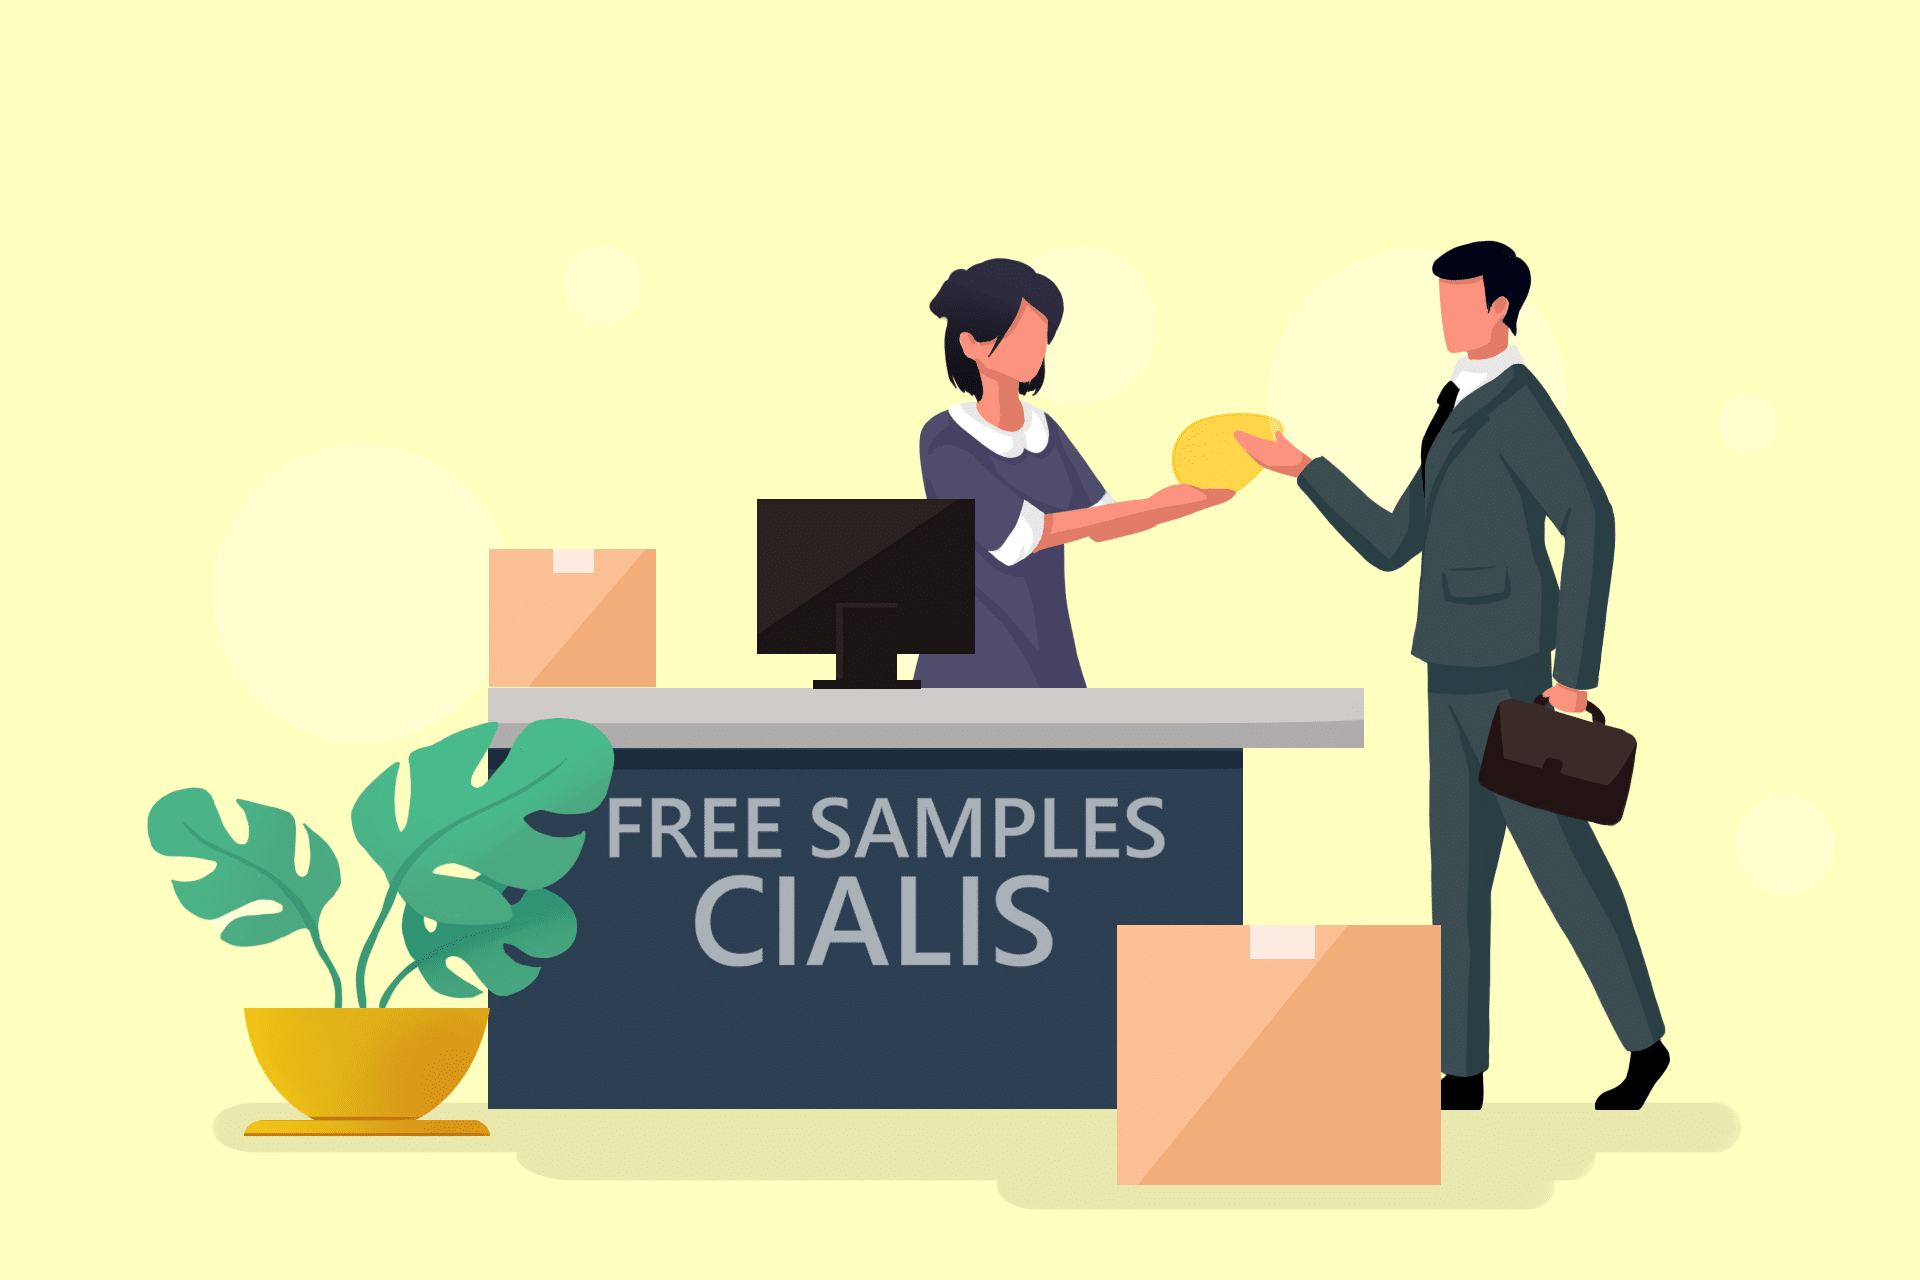 How to Get Free Trial Cialis Samples